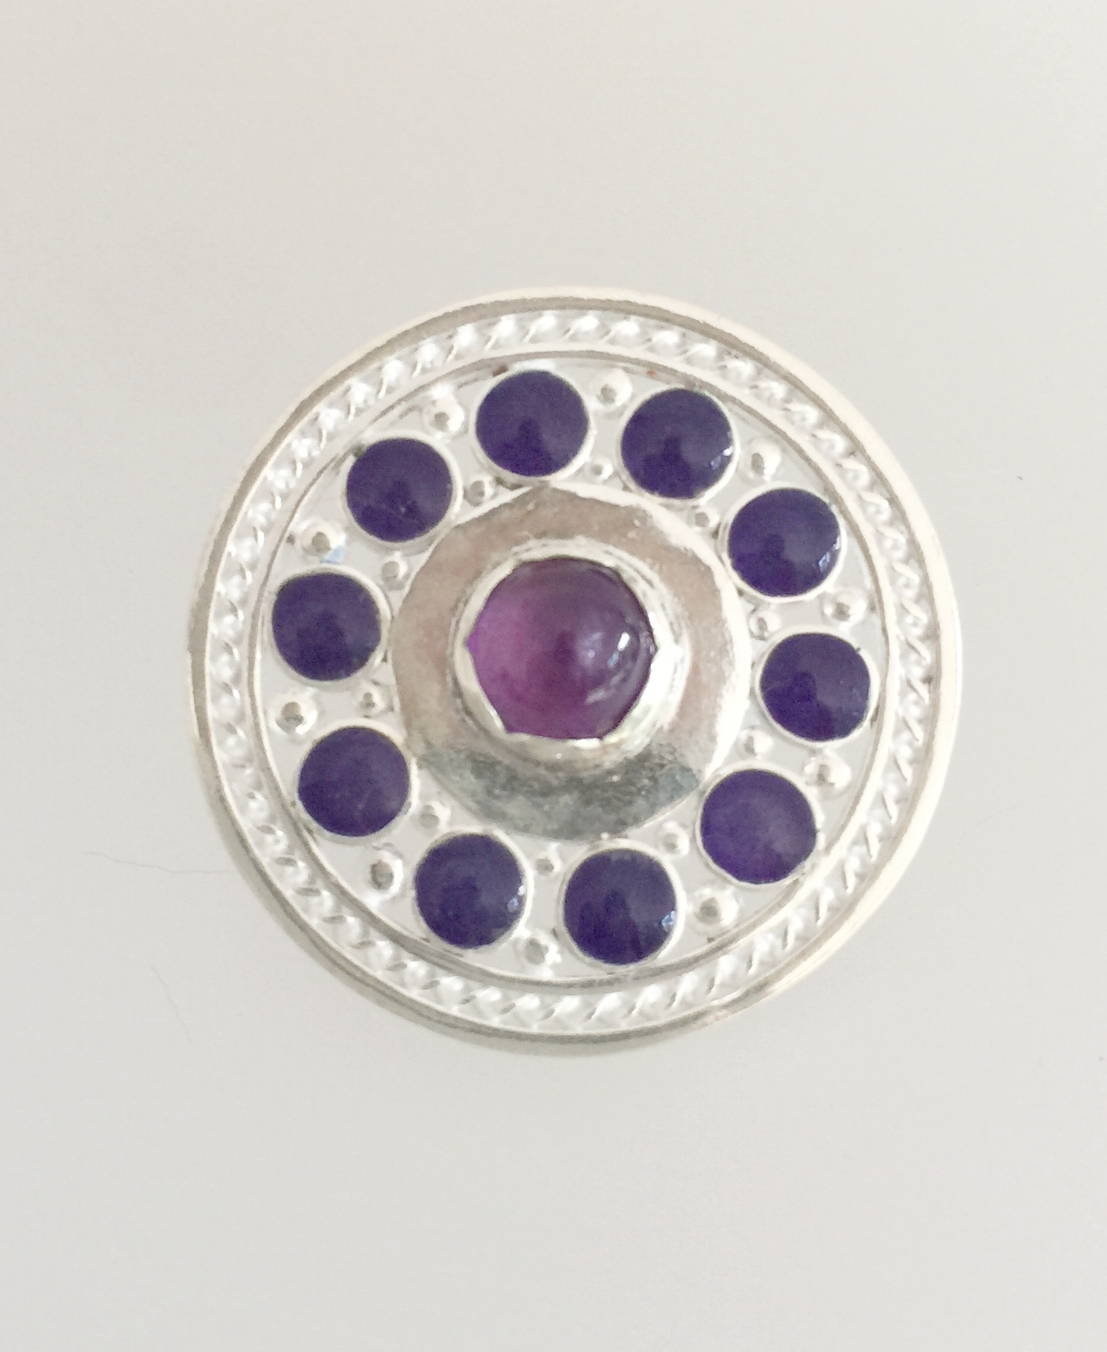 Round with Cabochon Enamel and Central Amethyst